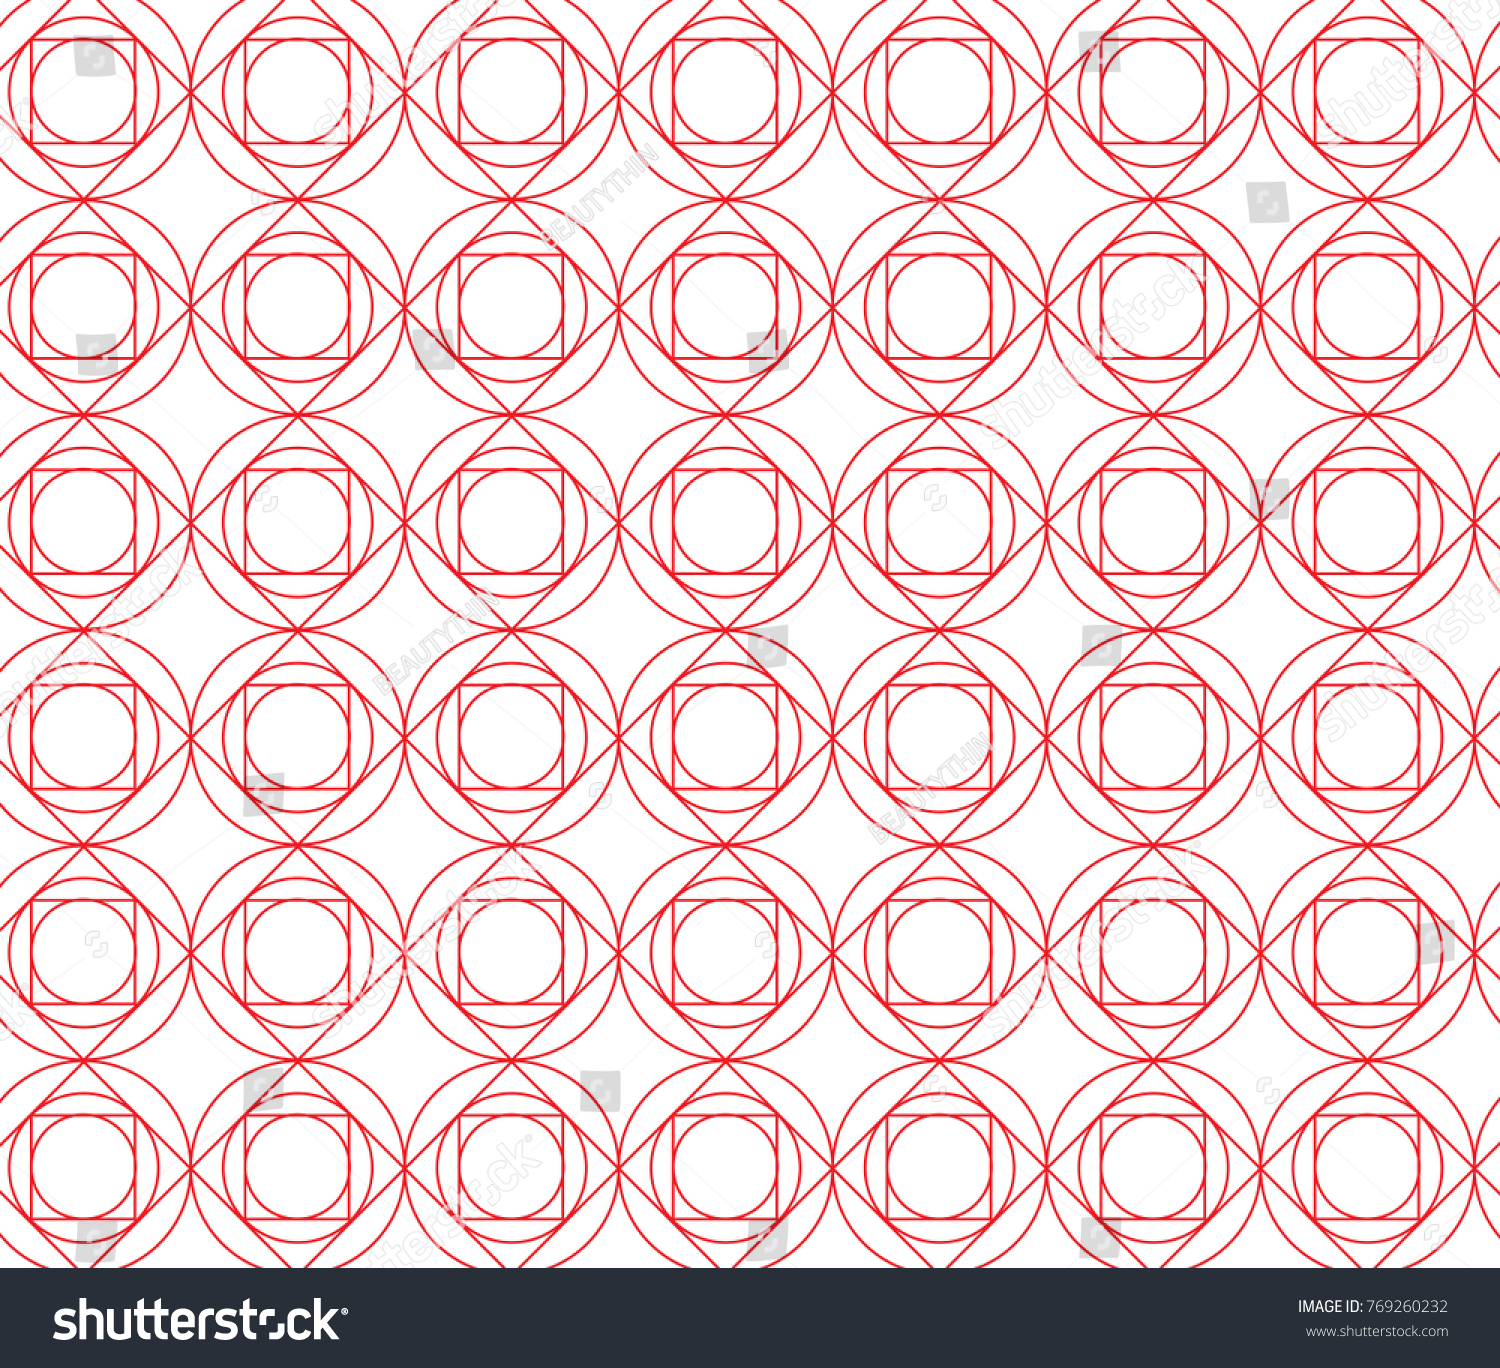 diamond anastasyastocks symbol background inside is ring depositphotos rounded stock gmail illustration white black flat style vector iconic icon circle color by